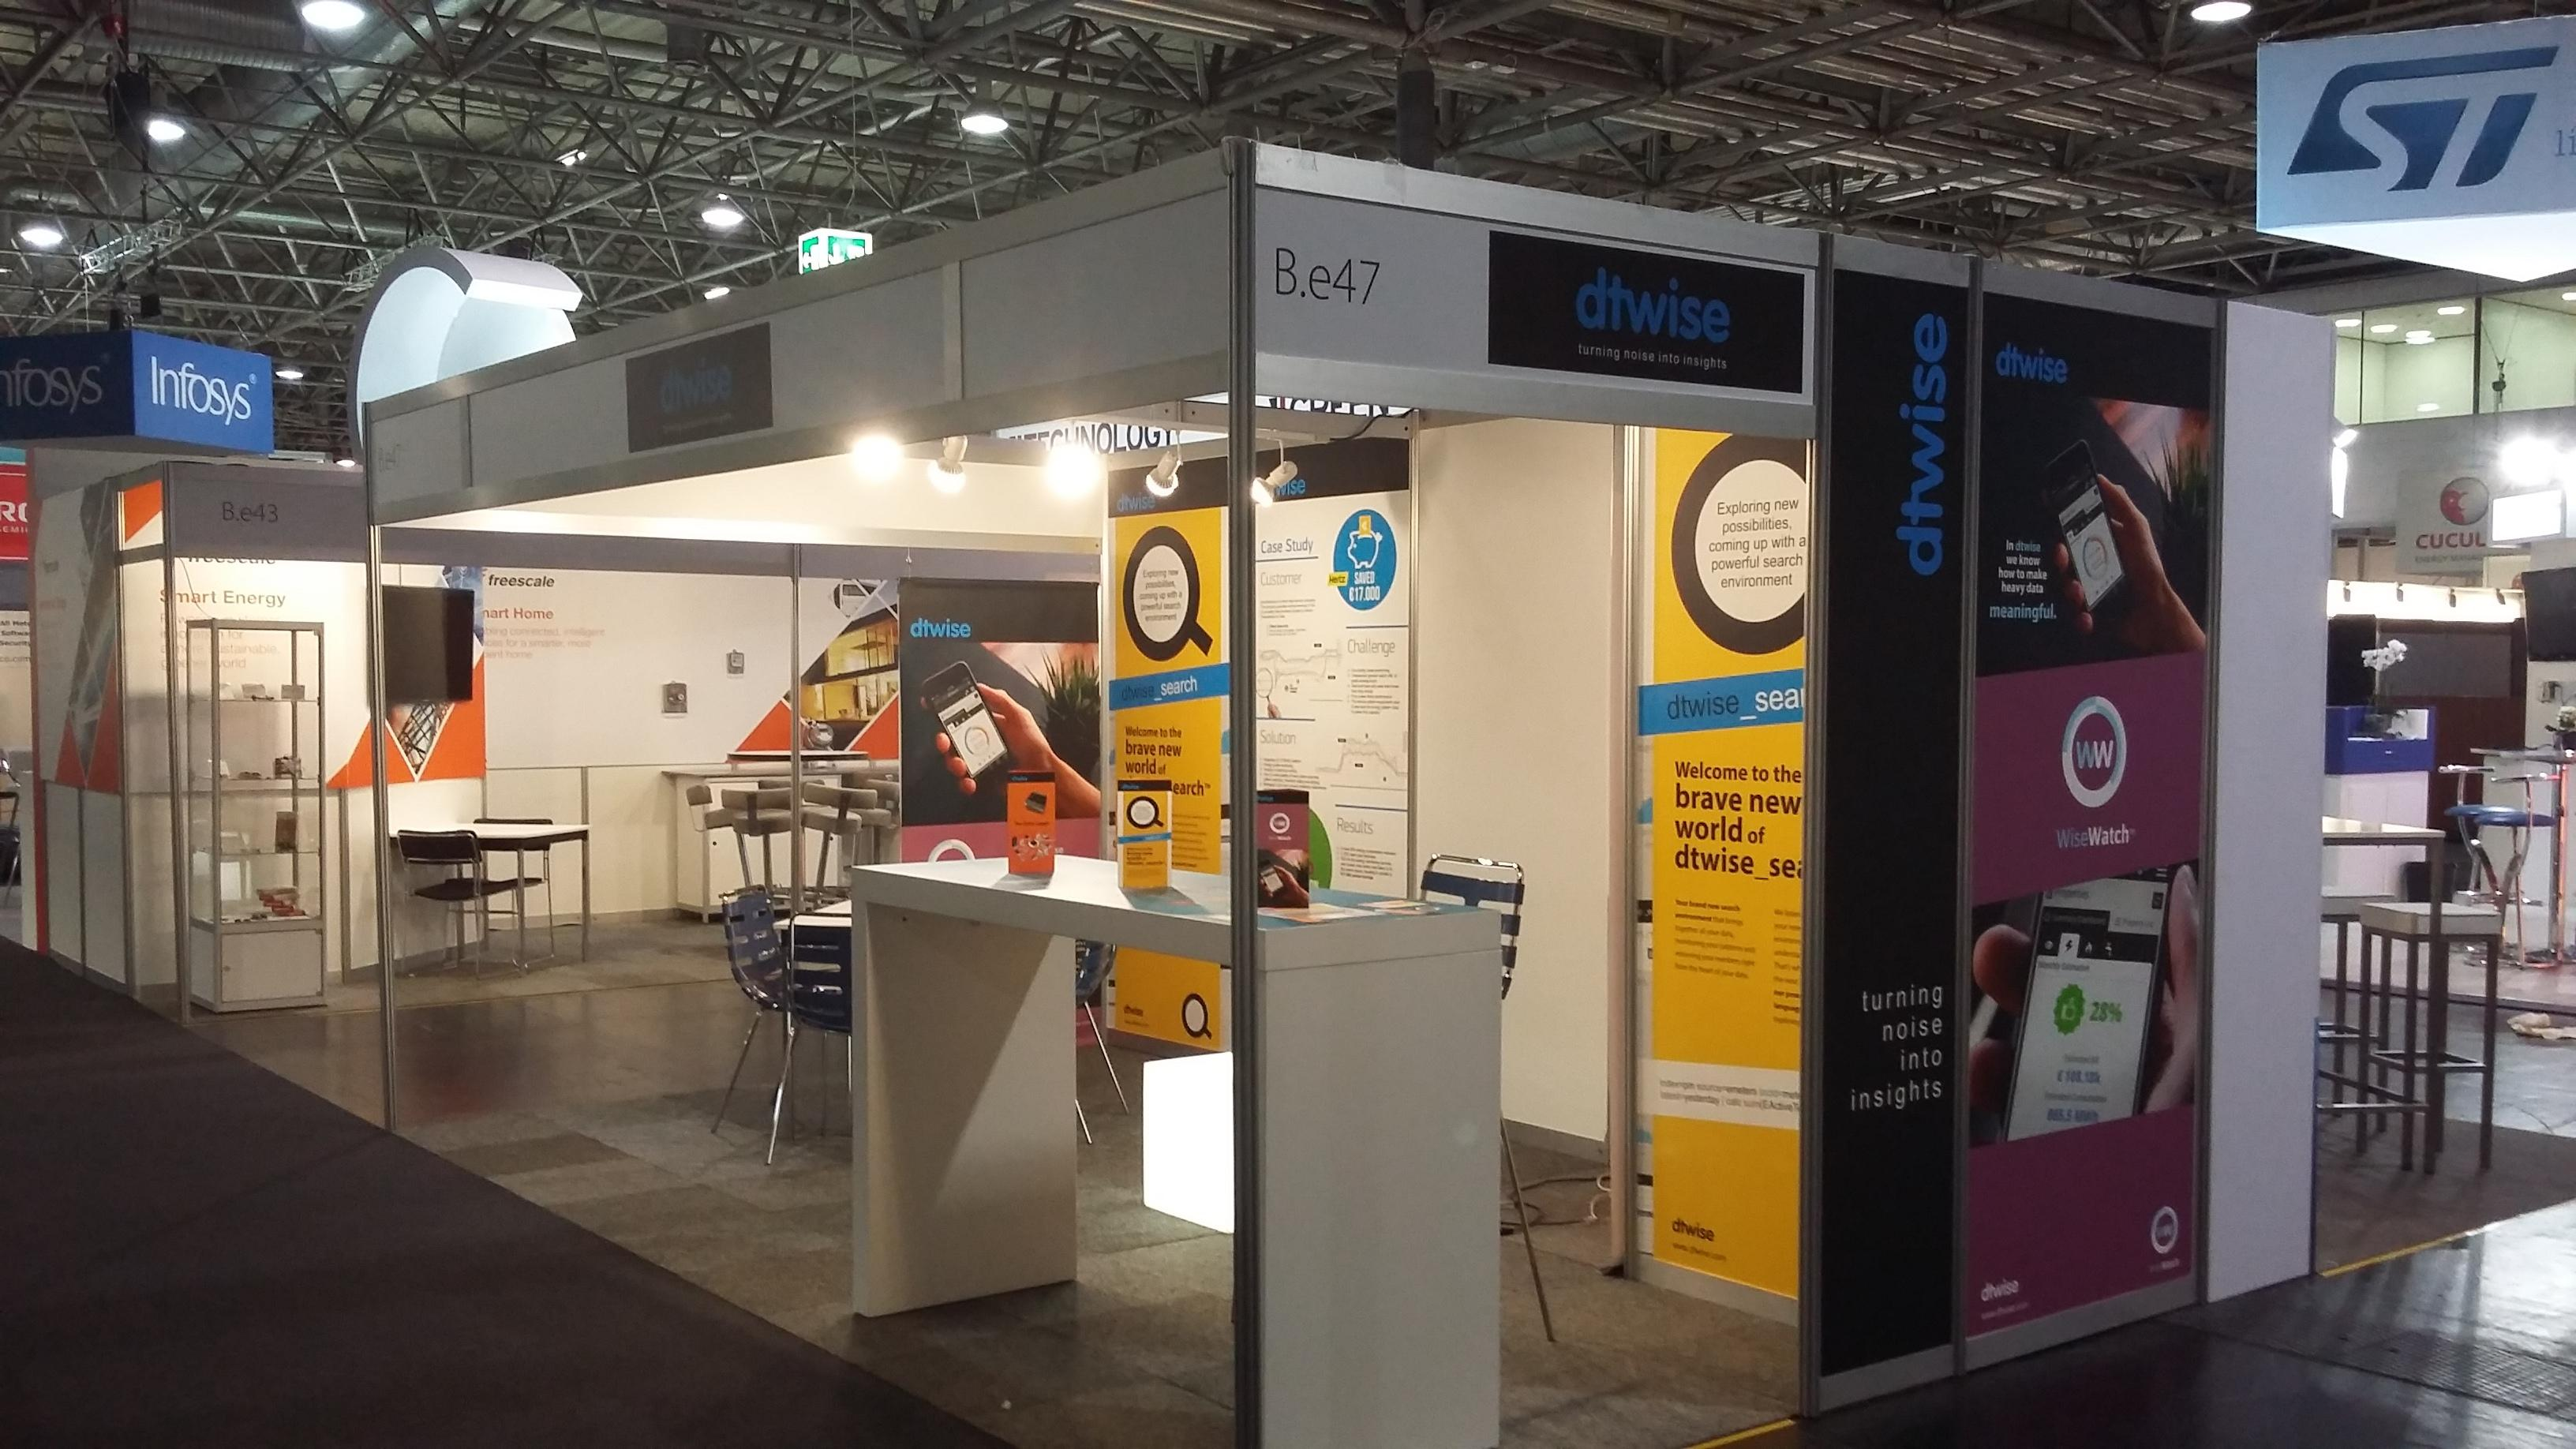 DTWISE Exhibition booth complete before the start of the European Utility Week 2015